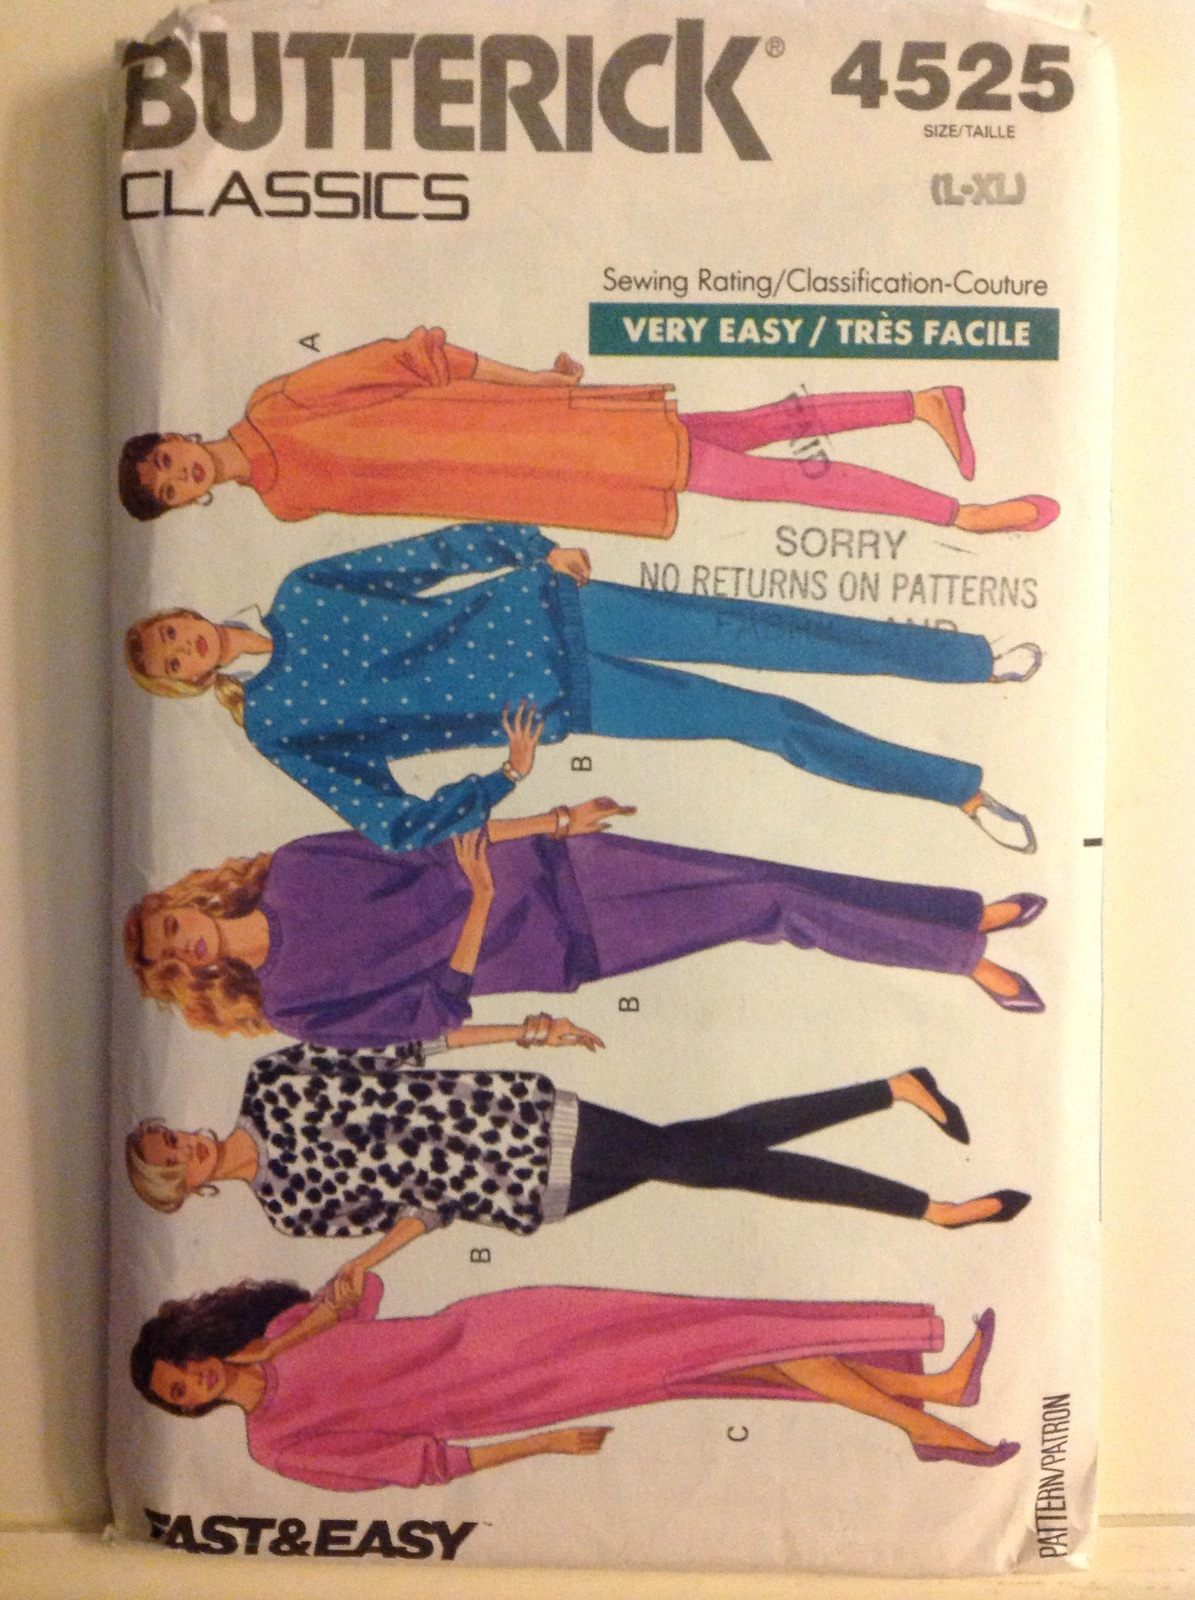 Butterick Pattern Classic 4525 Misses Top, Caftan, Leggings,& Pants Size L-XL